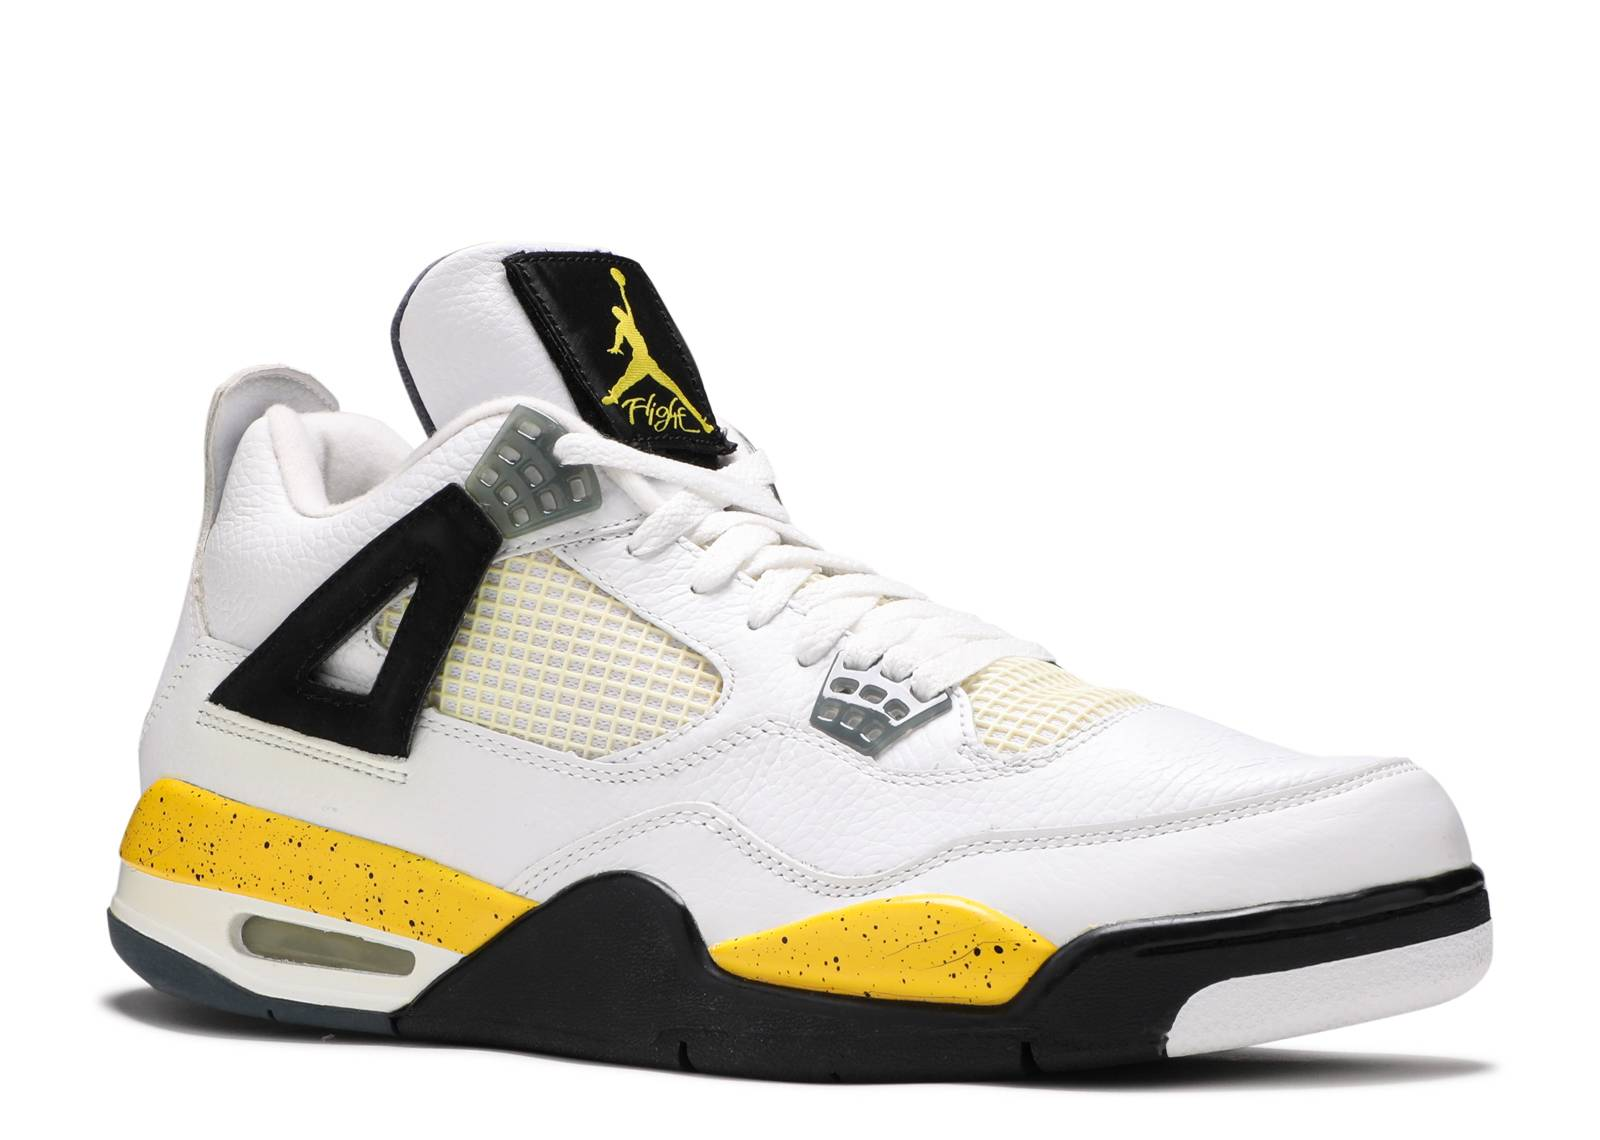 342d4772aa29a0 Air Jordan 4 Retro Ls